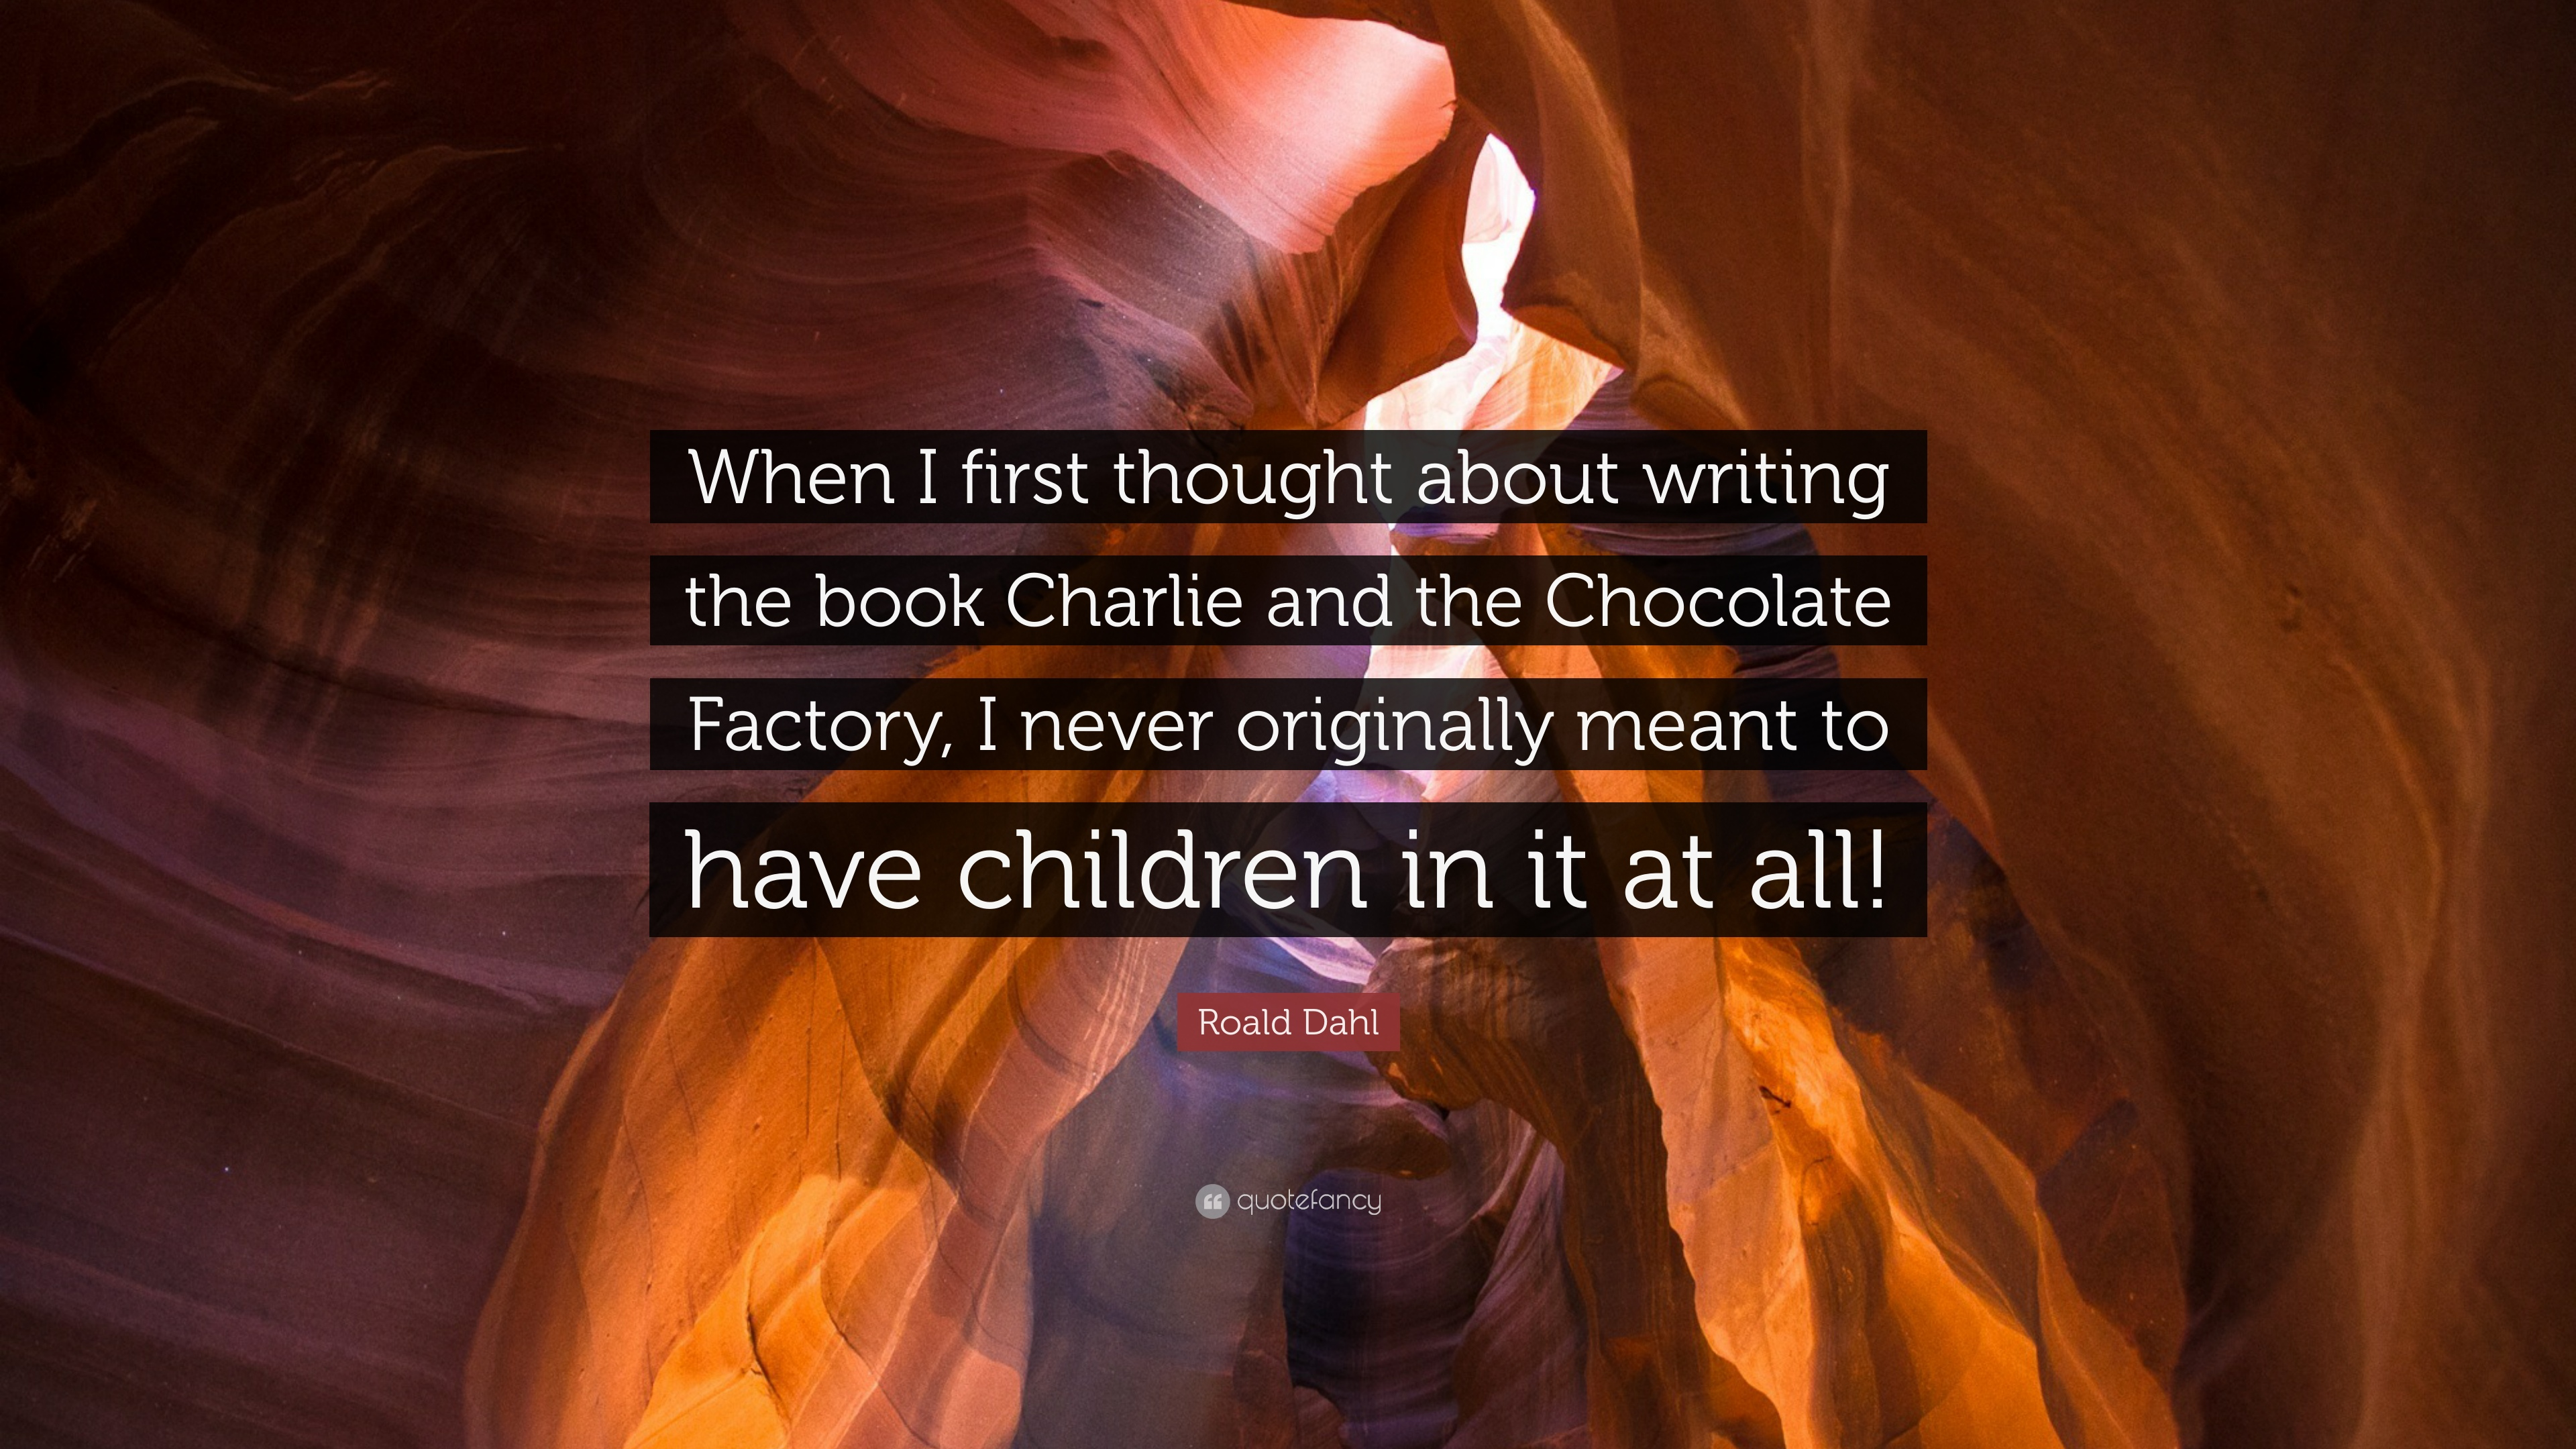 when was charlie and the chocolate factory written roald dahl s  roald dahl quote when i first thought about writing the book roald dahl quote when i